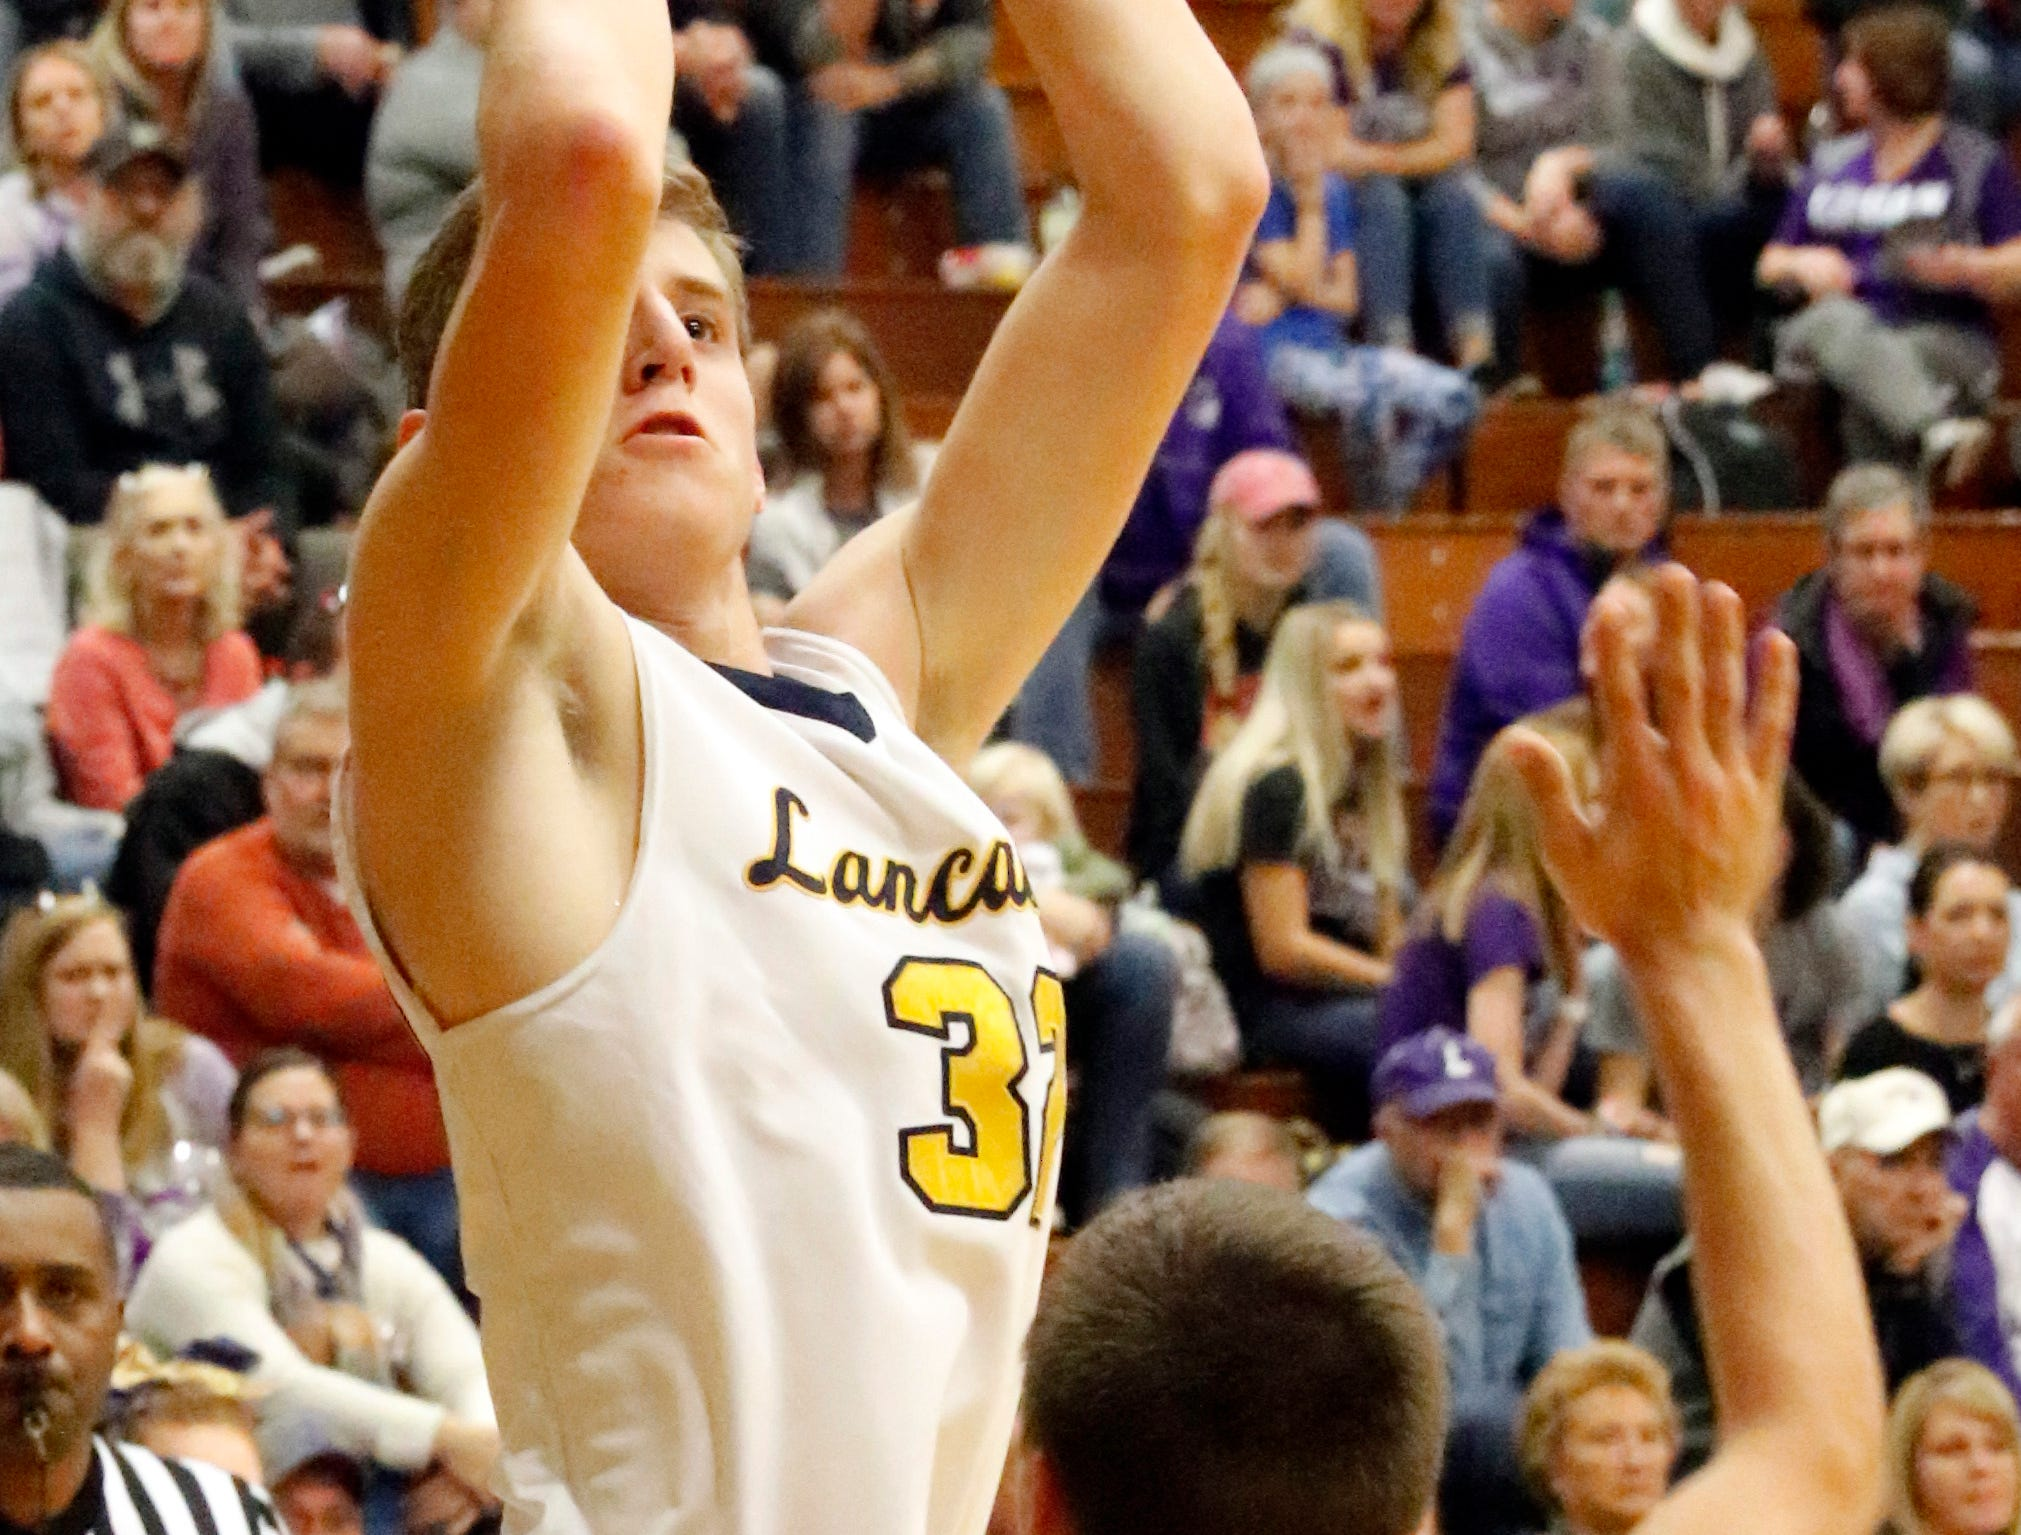 Lancaster's Tanner Roush takes a shot Tuesday night, Dec. 11, 2018, against Logan at Lancaster High School in Lancaster. The Golden Gales lost the game 65-37.